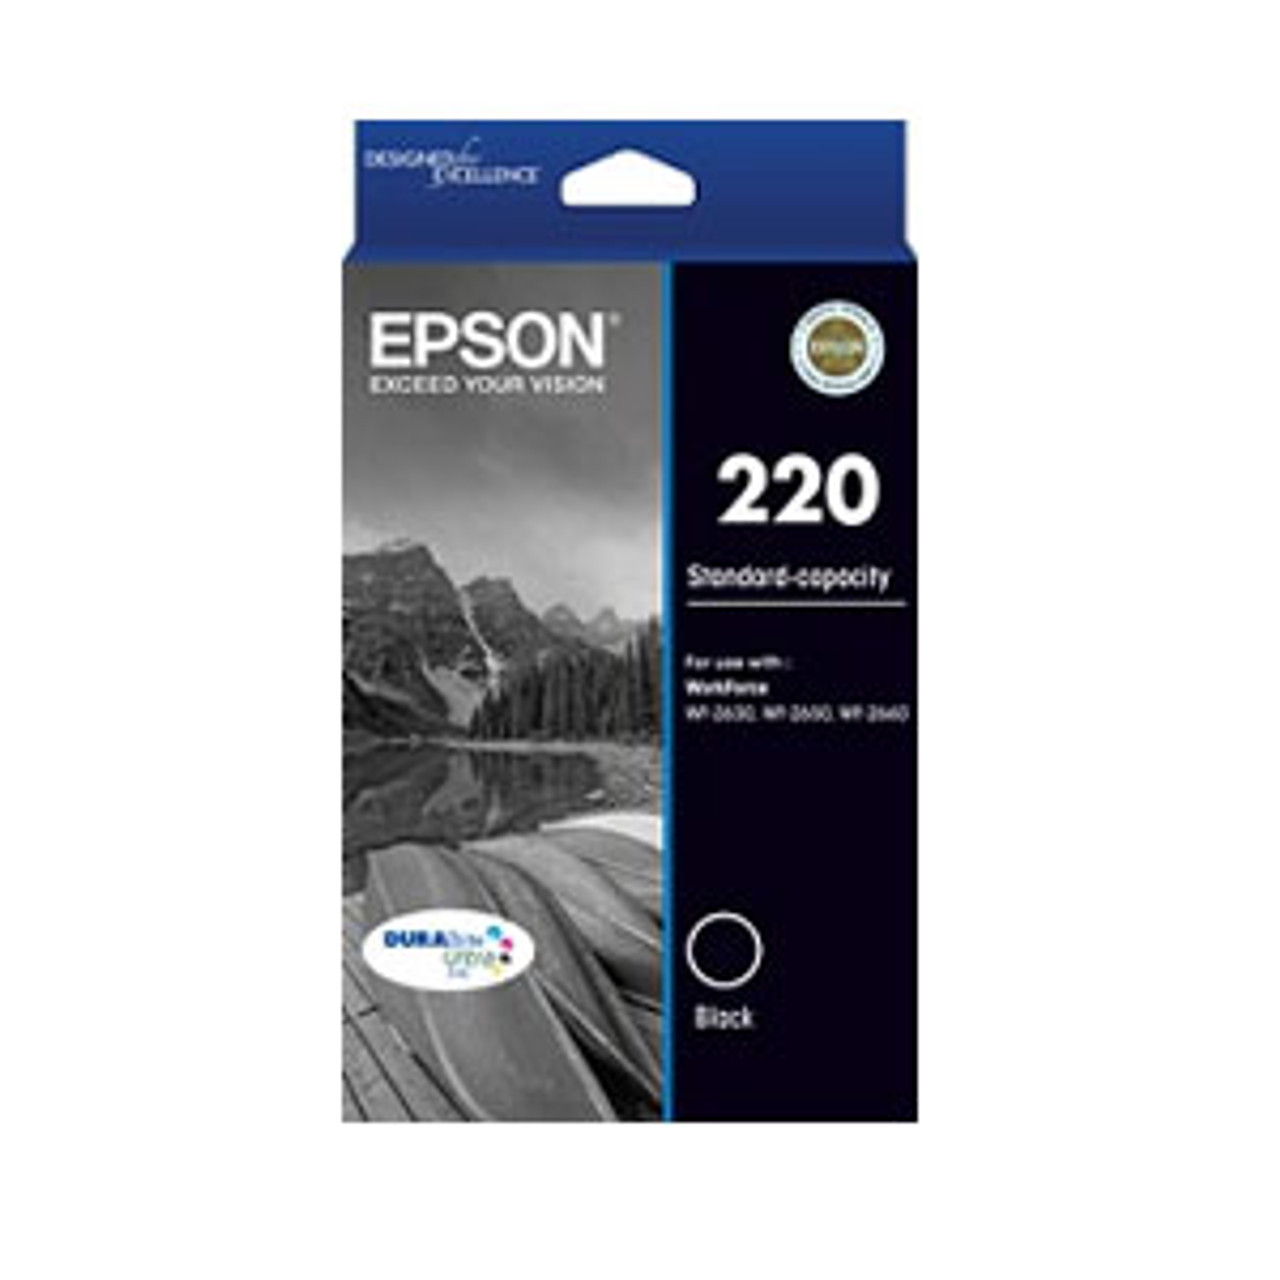 Image for Epson 220 Black Ink Cartridge CX Computer Superstore